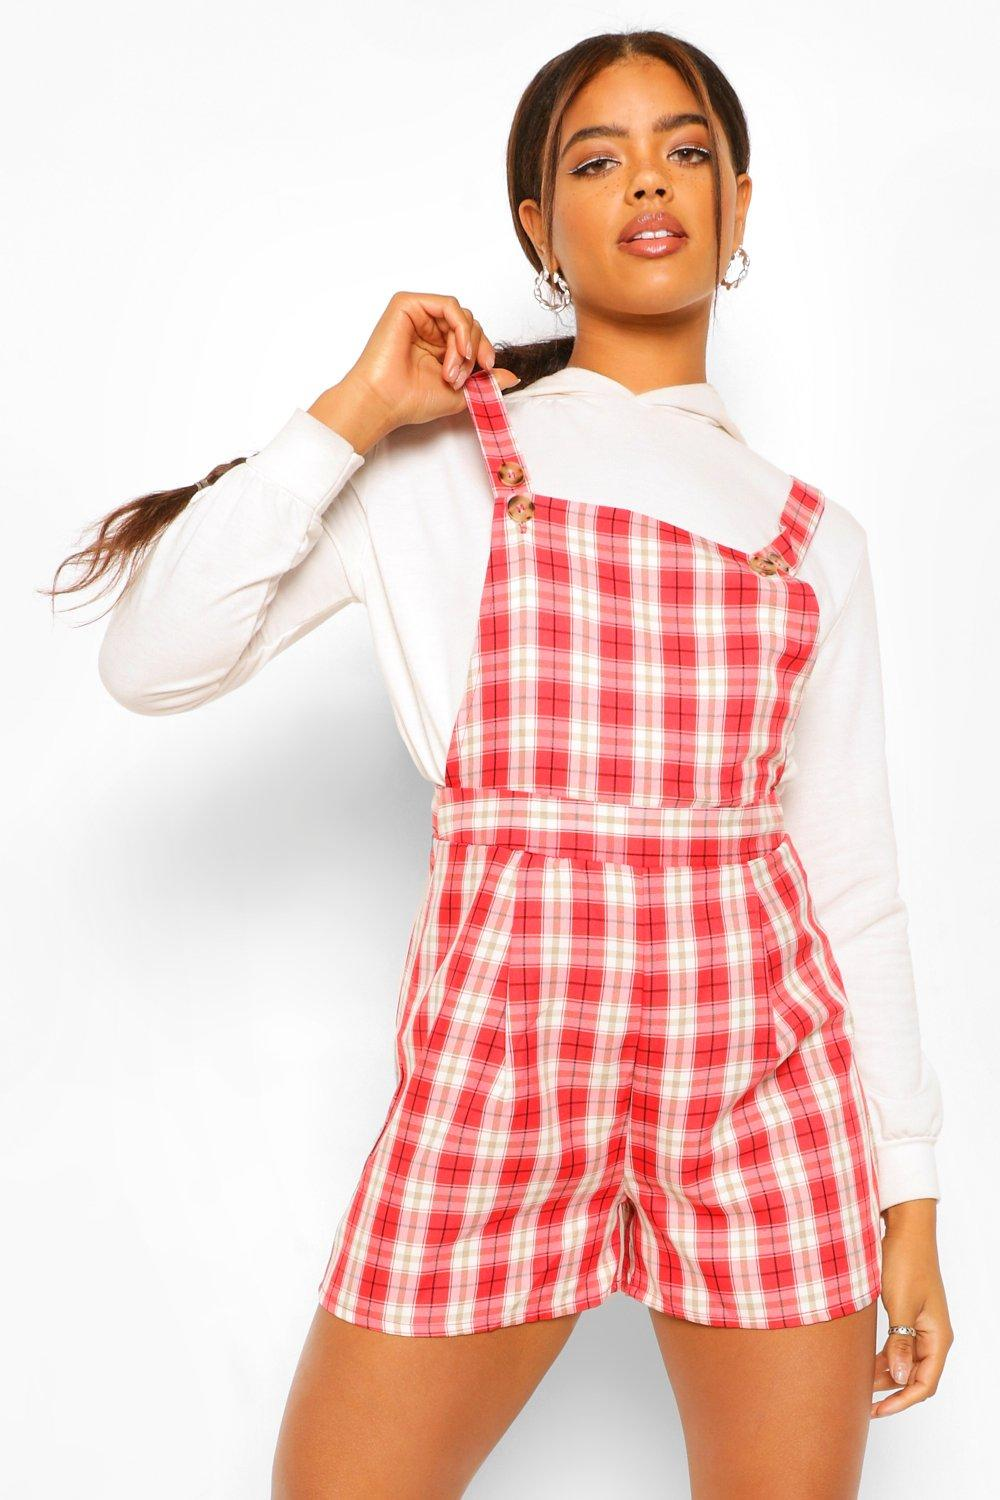 40s-50s Vintage Playsuits, Jumpsuits, Rompers History Womens Woven Flannel Pinafore Pleat Hem Romper - Red - 12 $16.00 AT vintagedancer.com